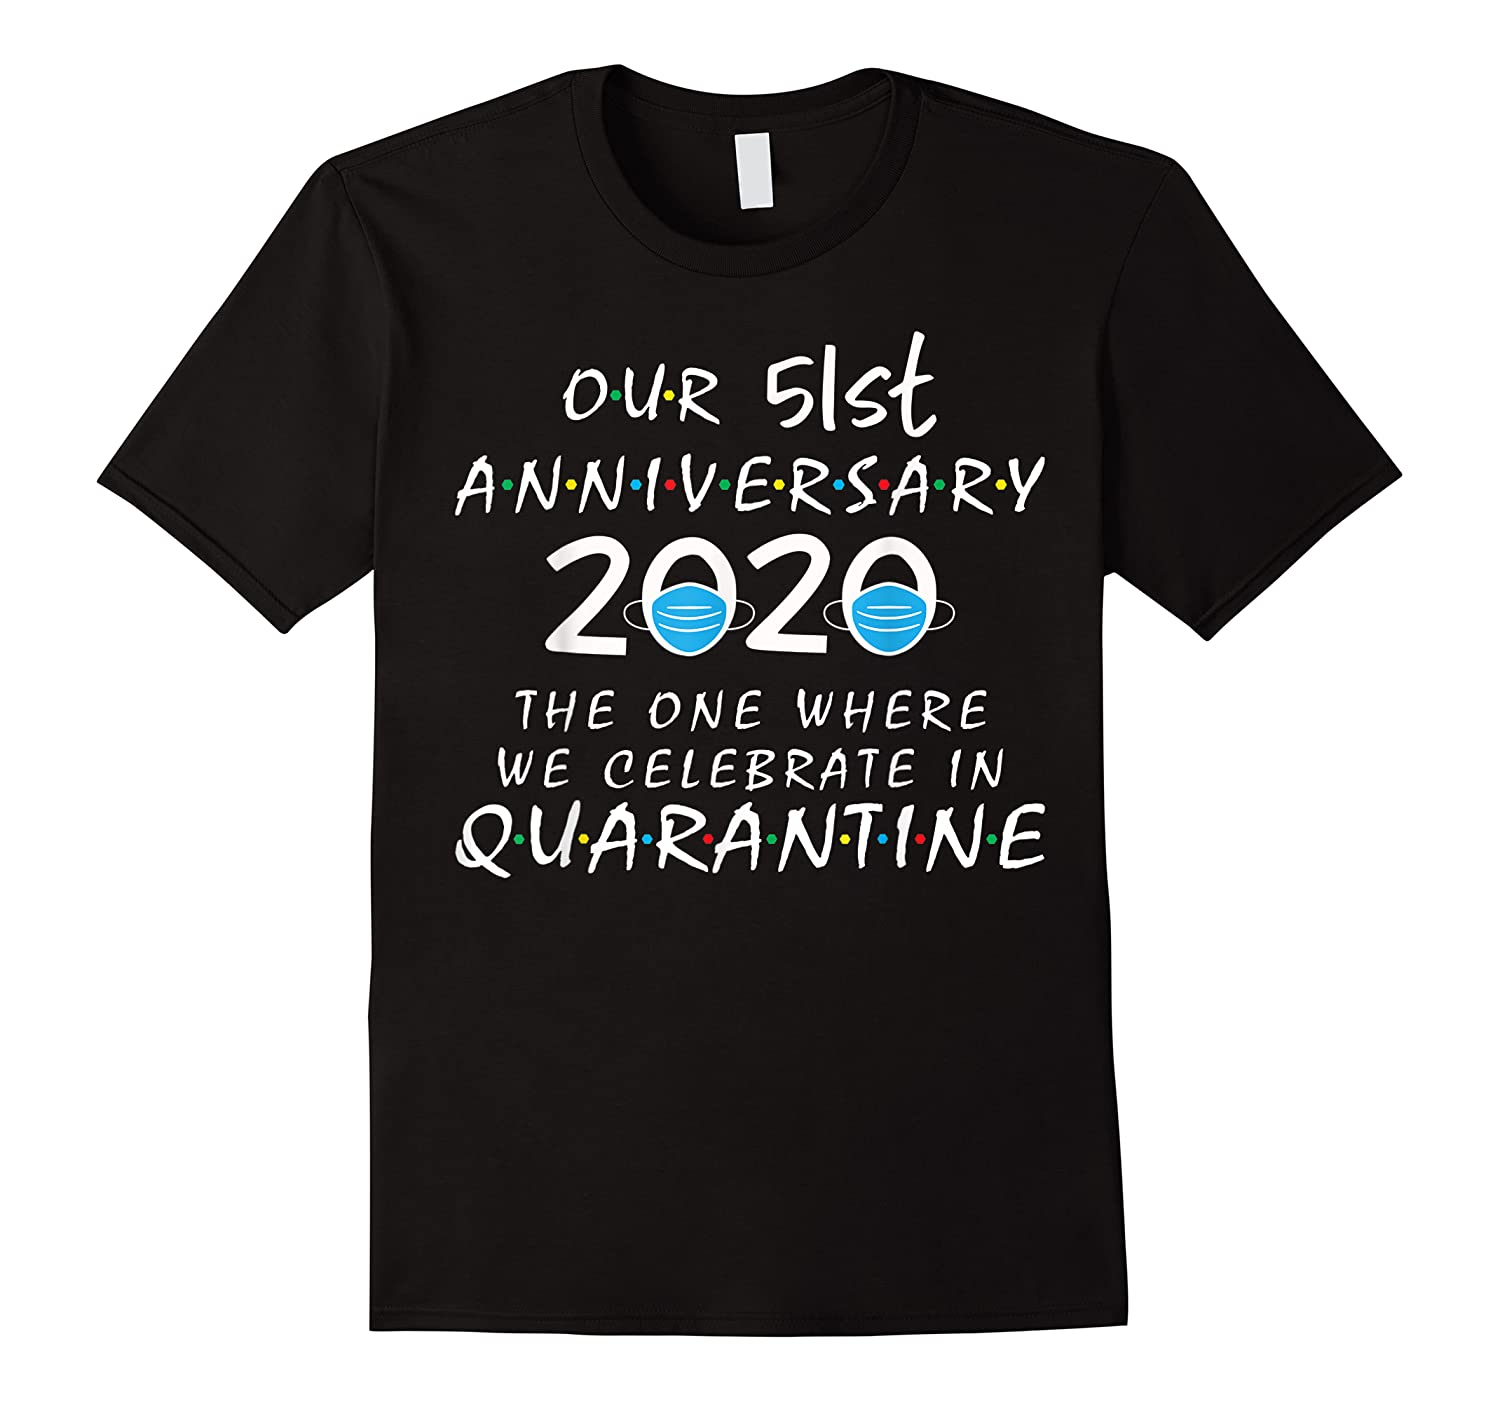 51st Anniversary Celebrate In Quarantine, Social Distancing Shirts